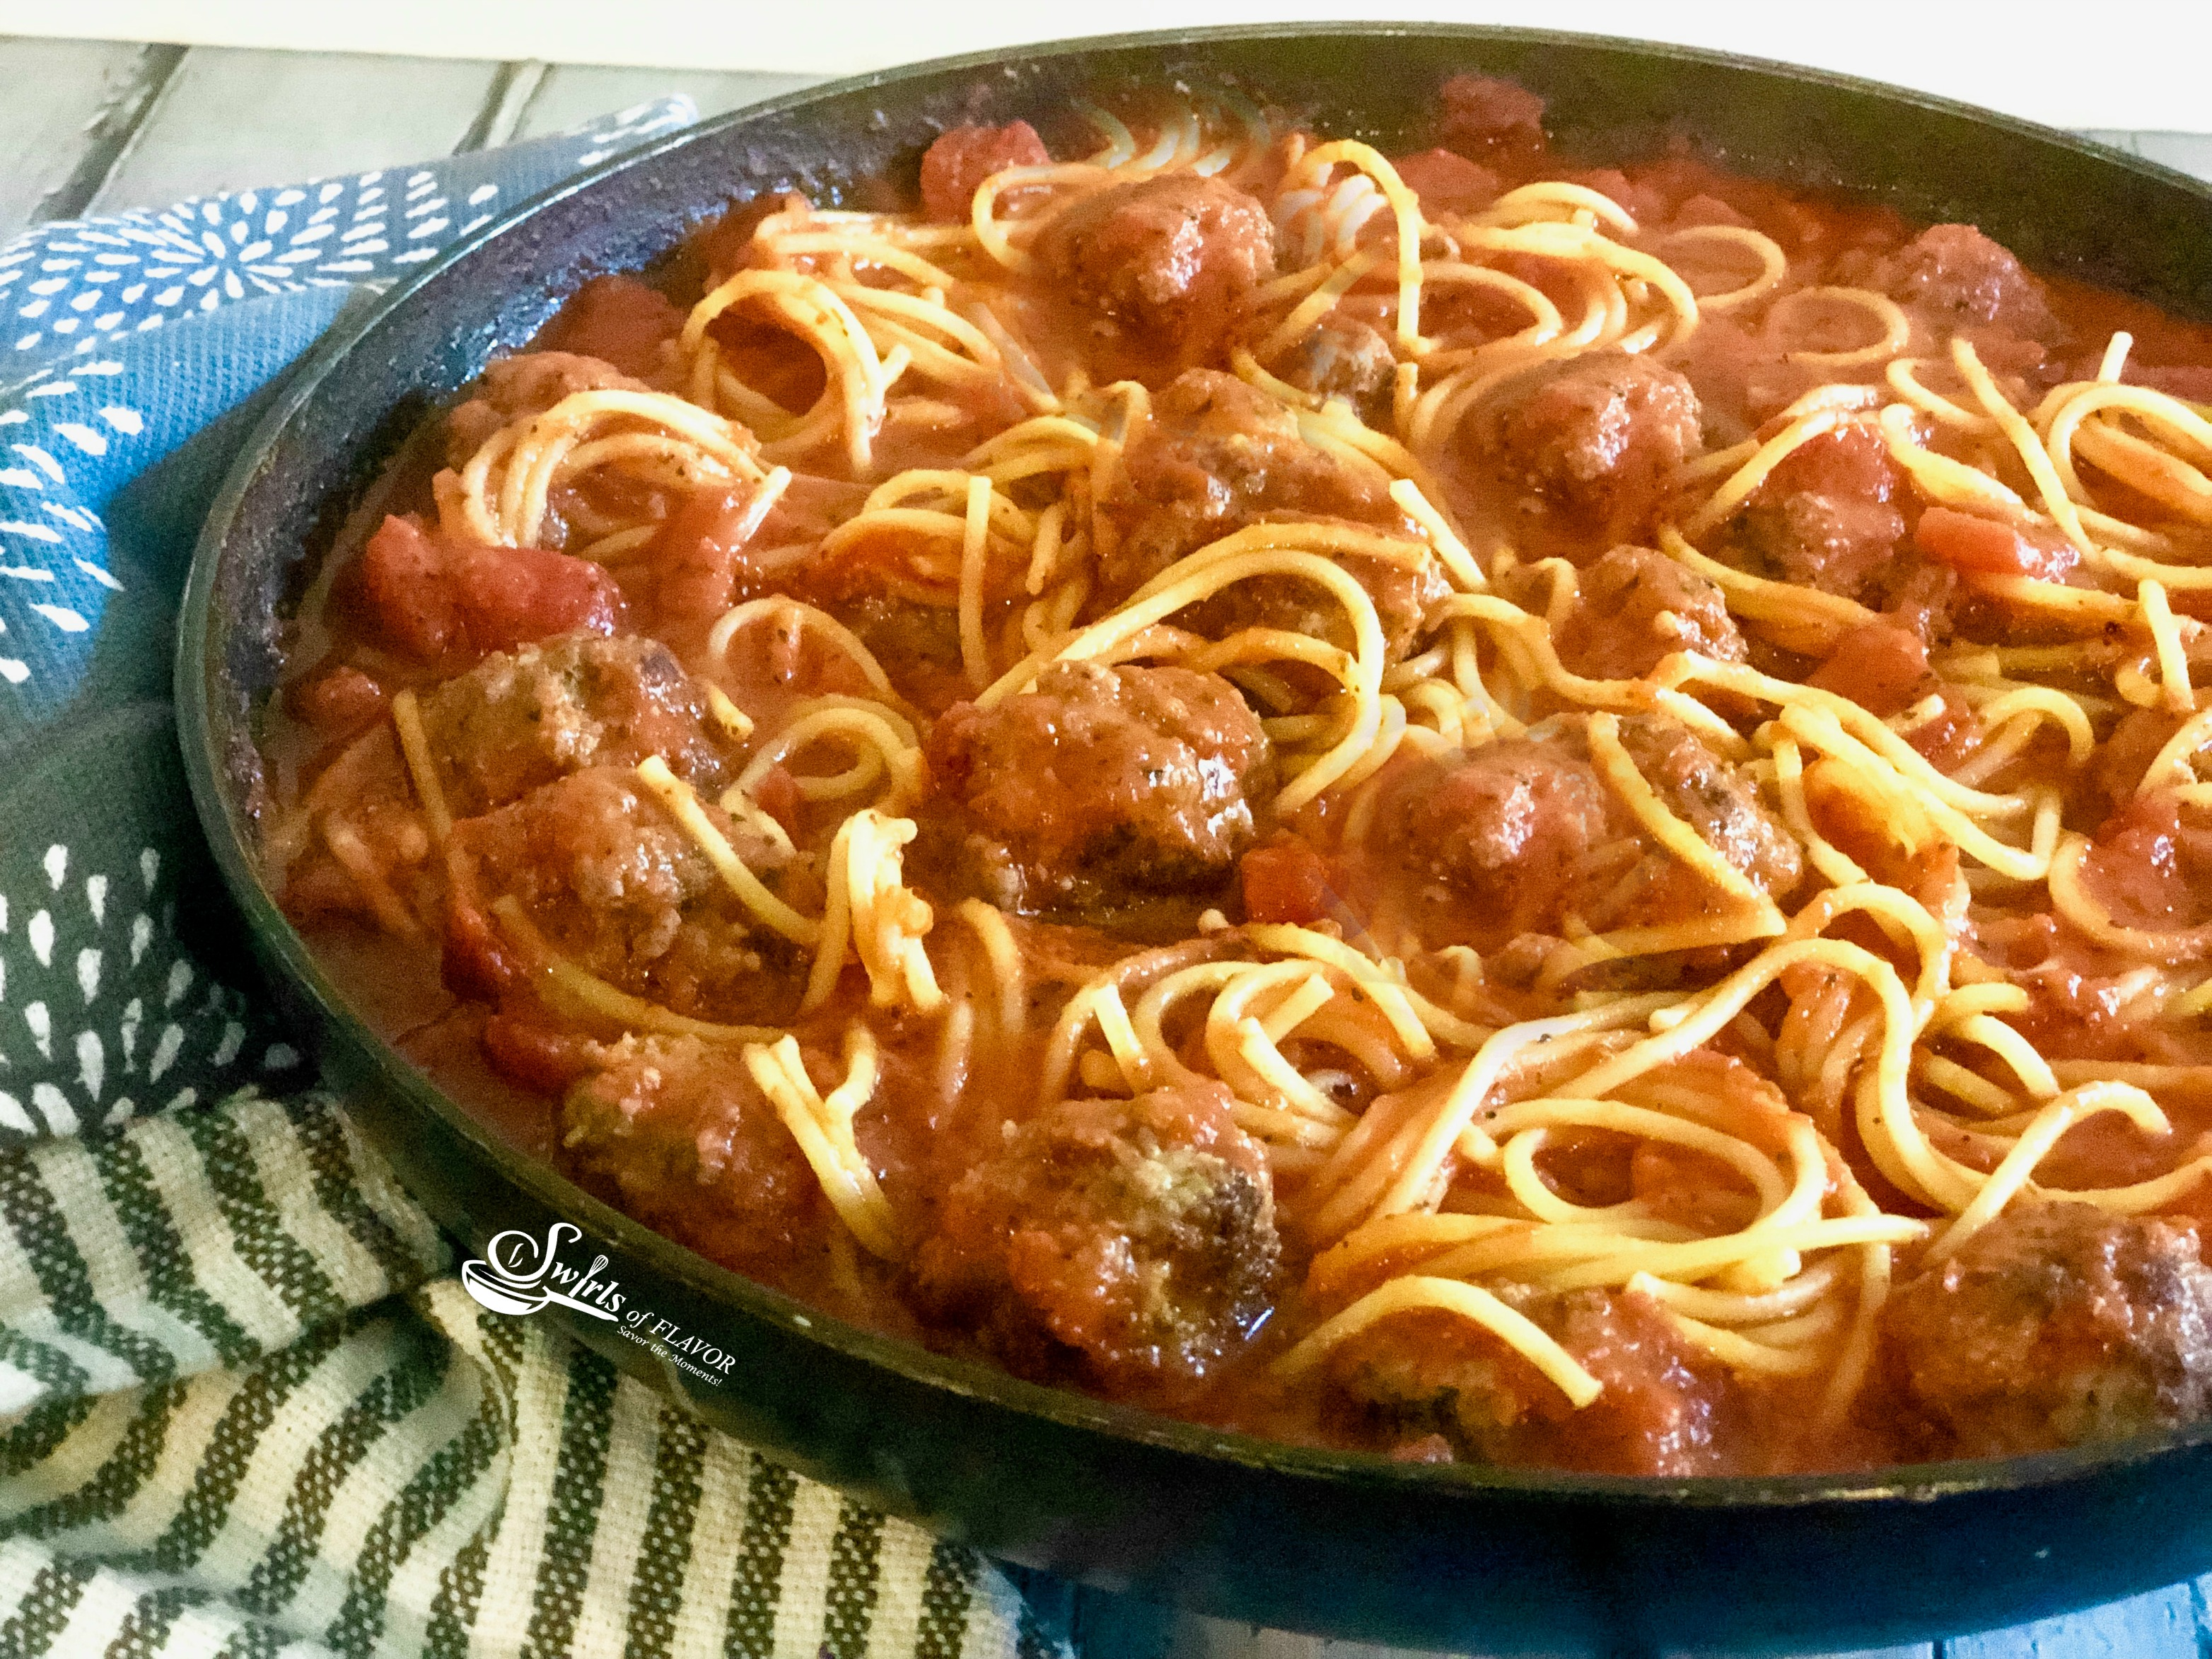 Spaghetti and meatballs in skillet